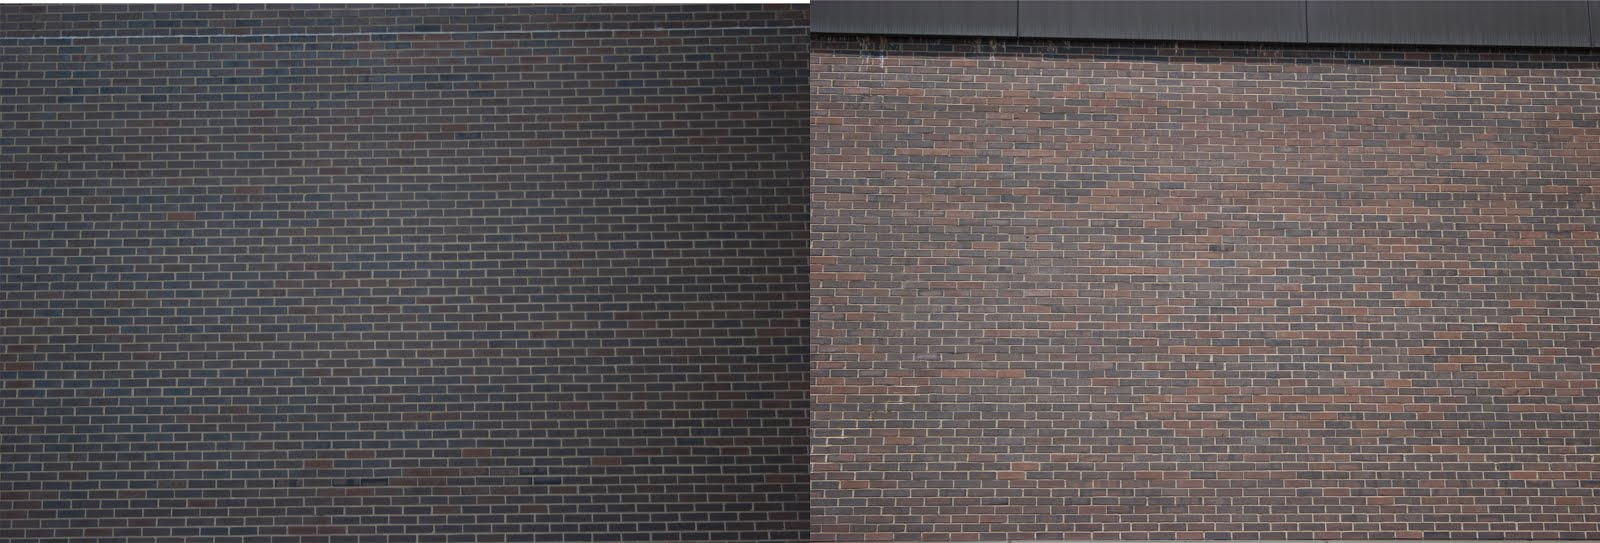 Image showing two brick textures